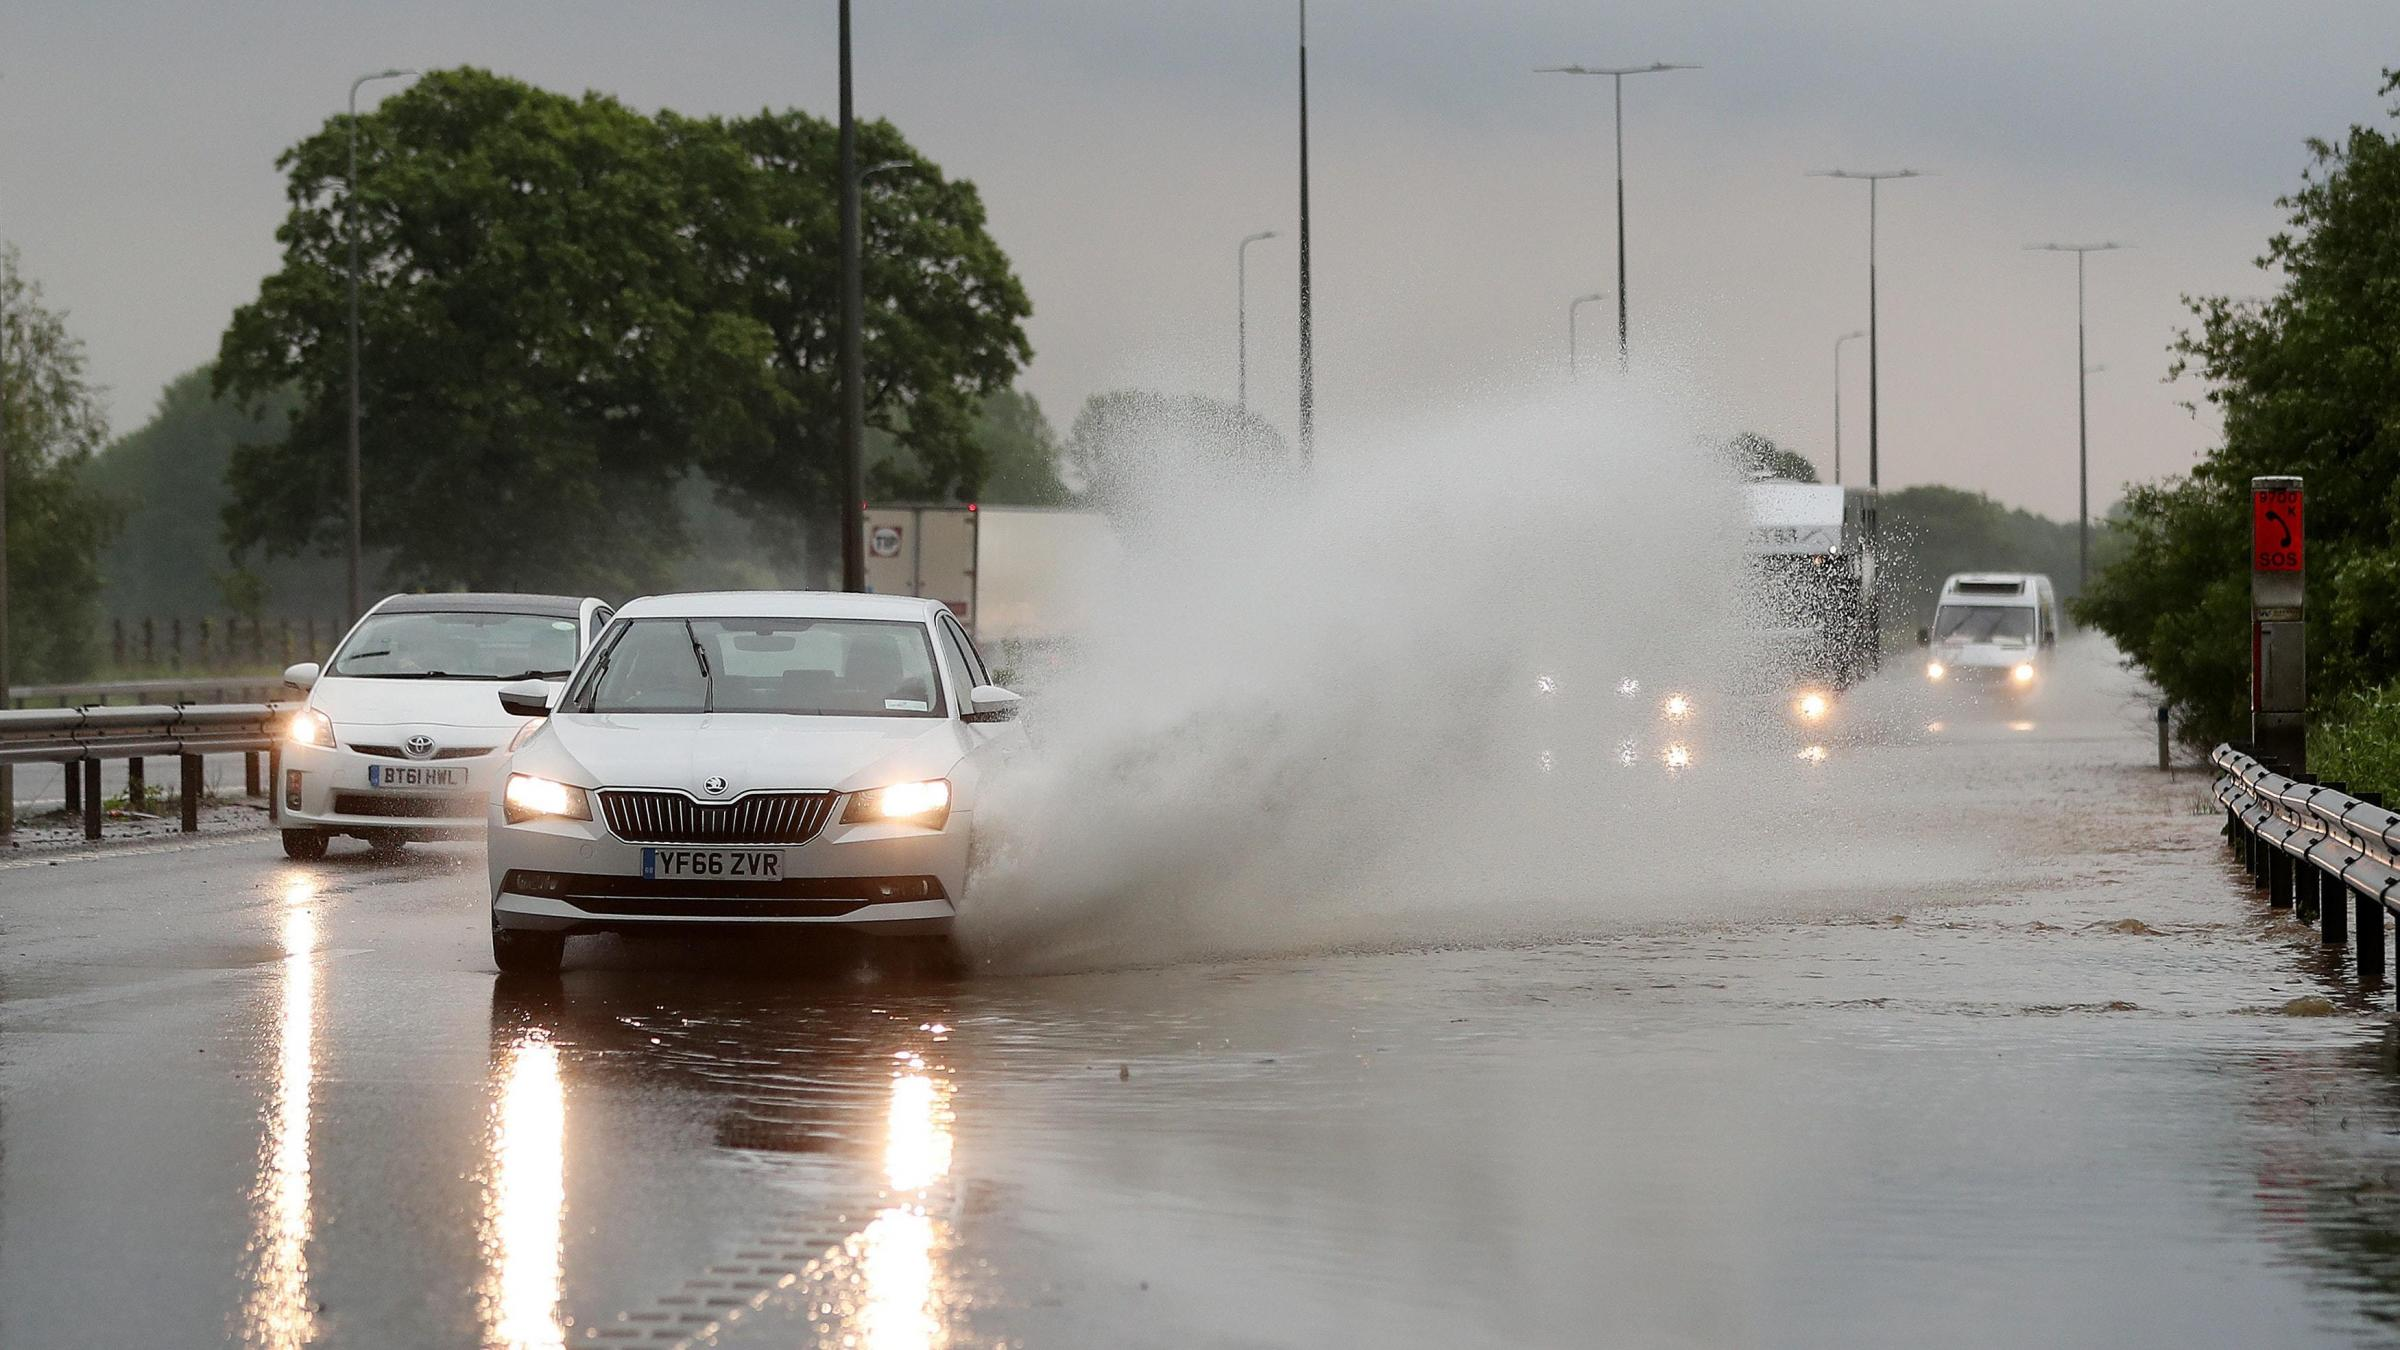 FORECAST: The wettest day of the summer predicted